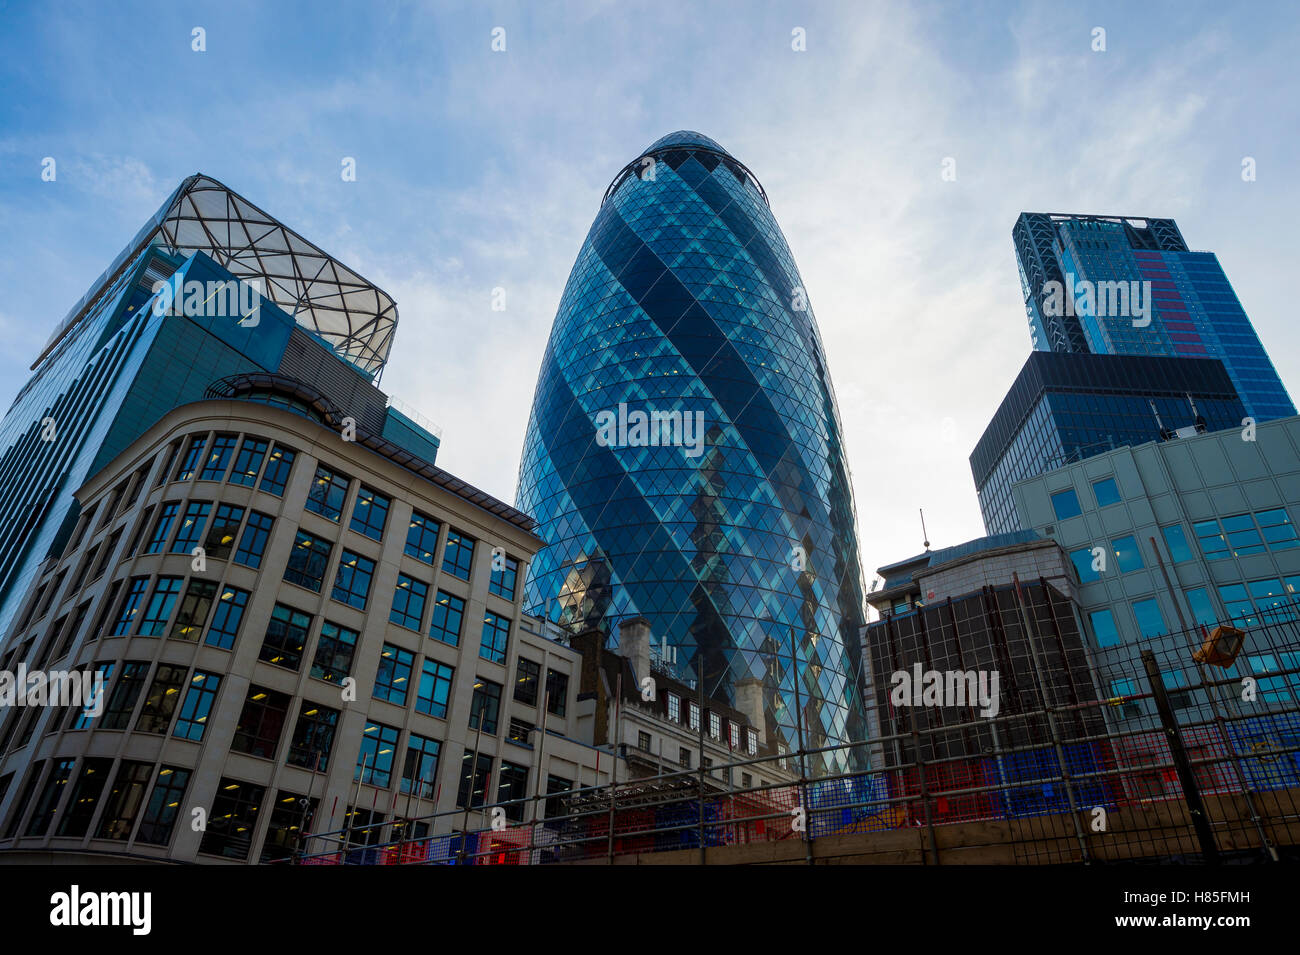 LONDON - NOVEMBER 3, 2016: Distinctive shape of the Gherkin building dominates the city skyline while new skyscrapers - Stock Image